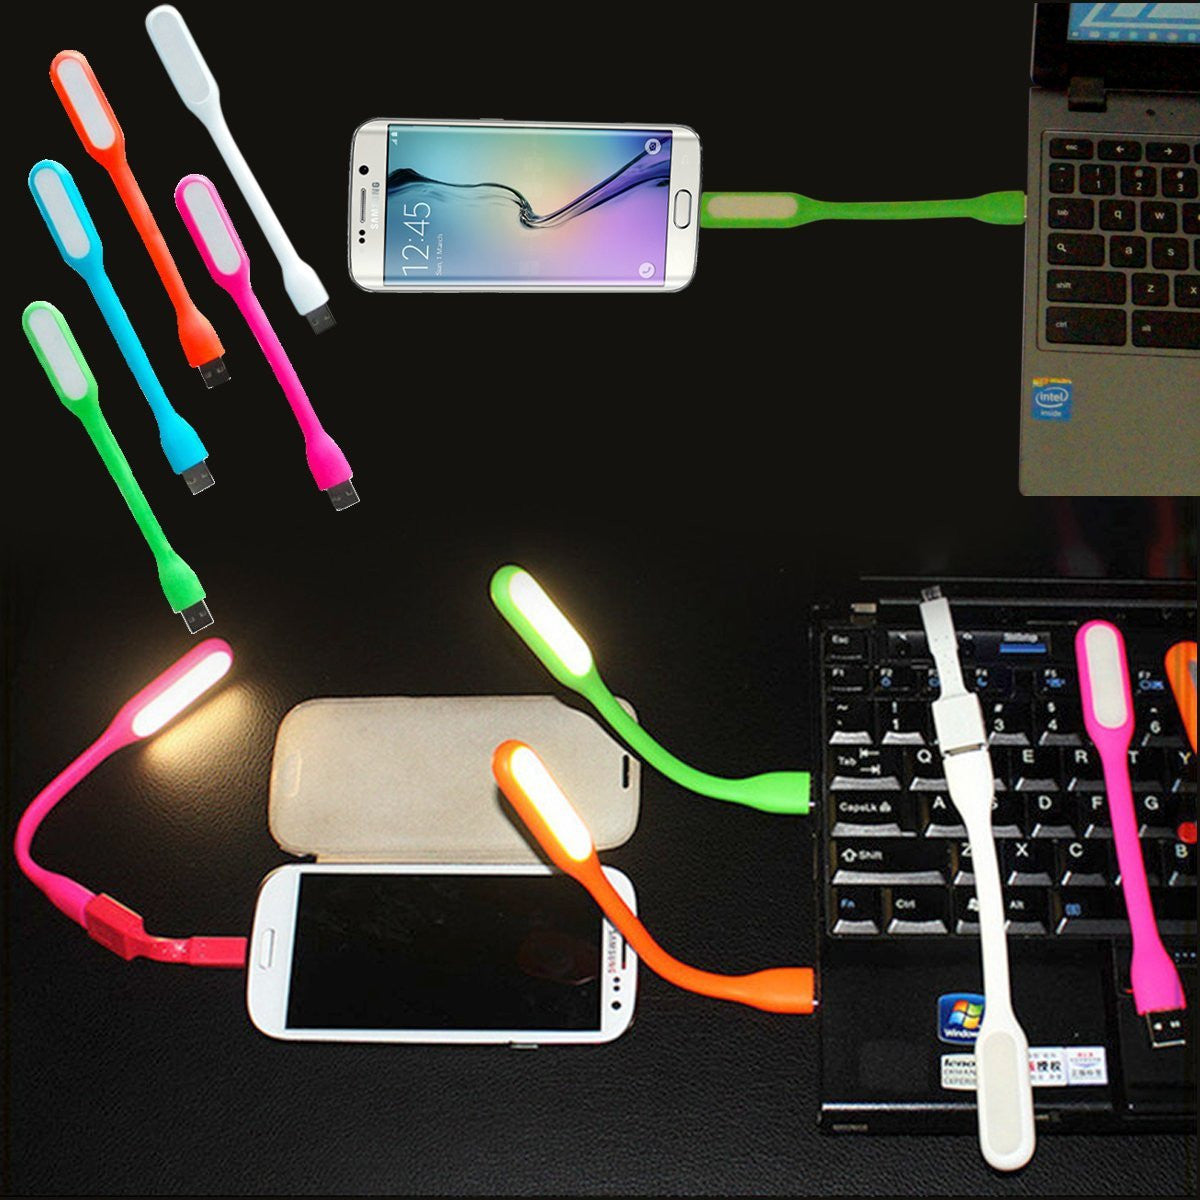 AmaziPro8 2-in-1 Mini USB LED Light + Charge Sync Cable For Android Micro USB + + FREE SHIPPING - AmaziPro8